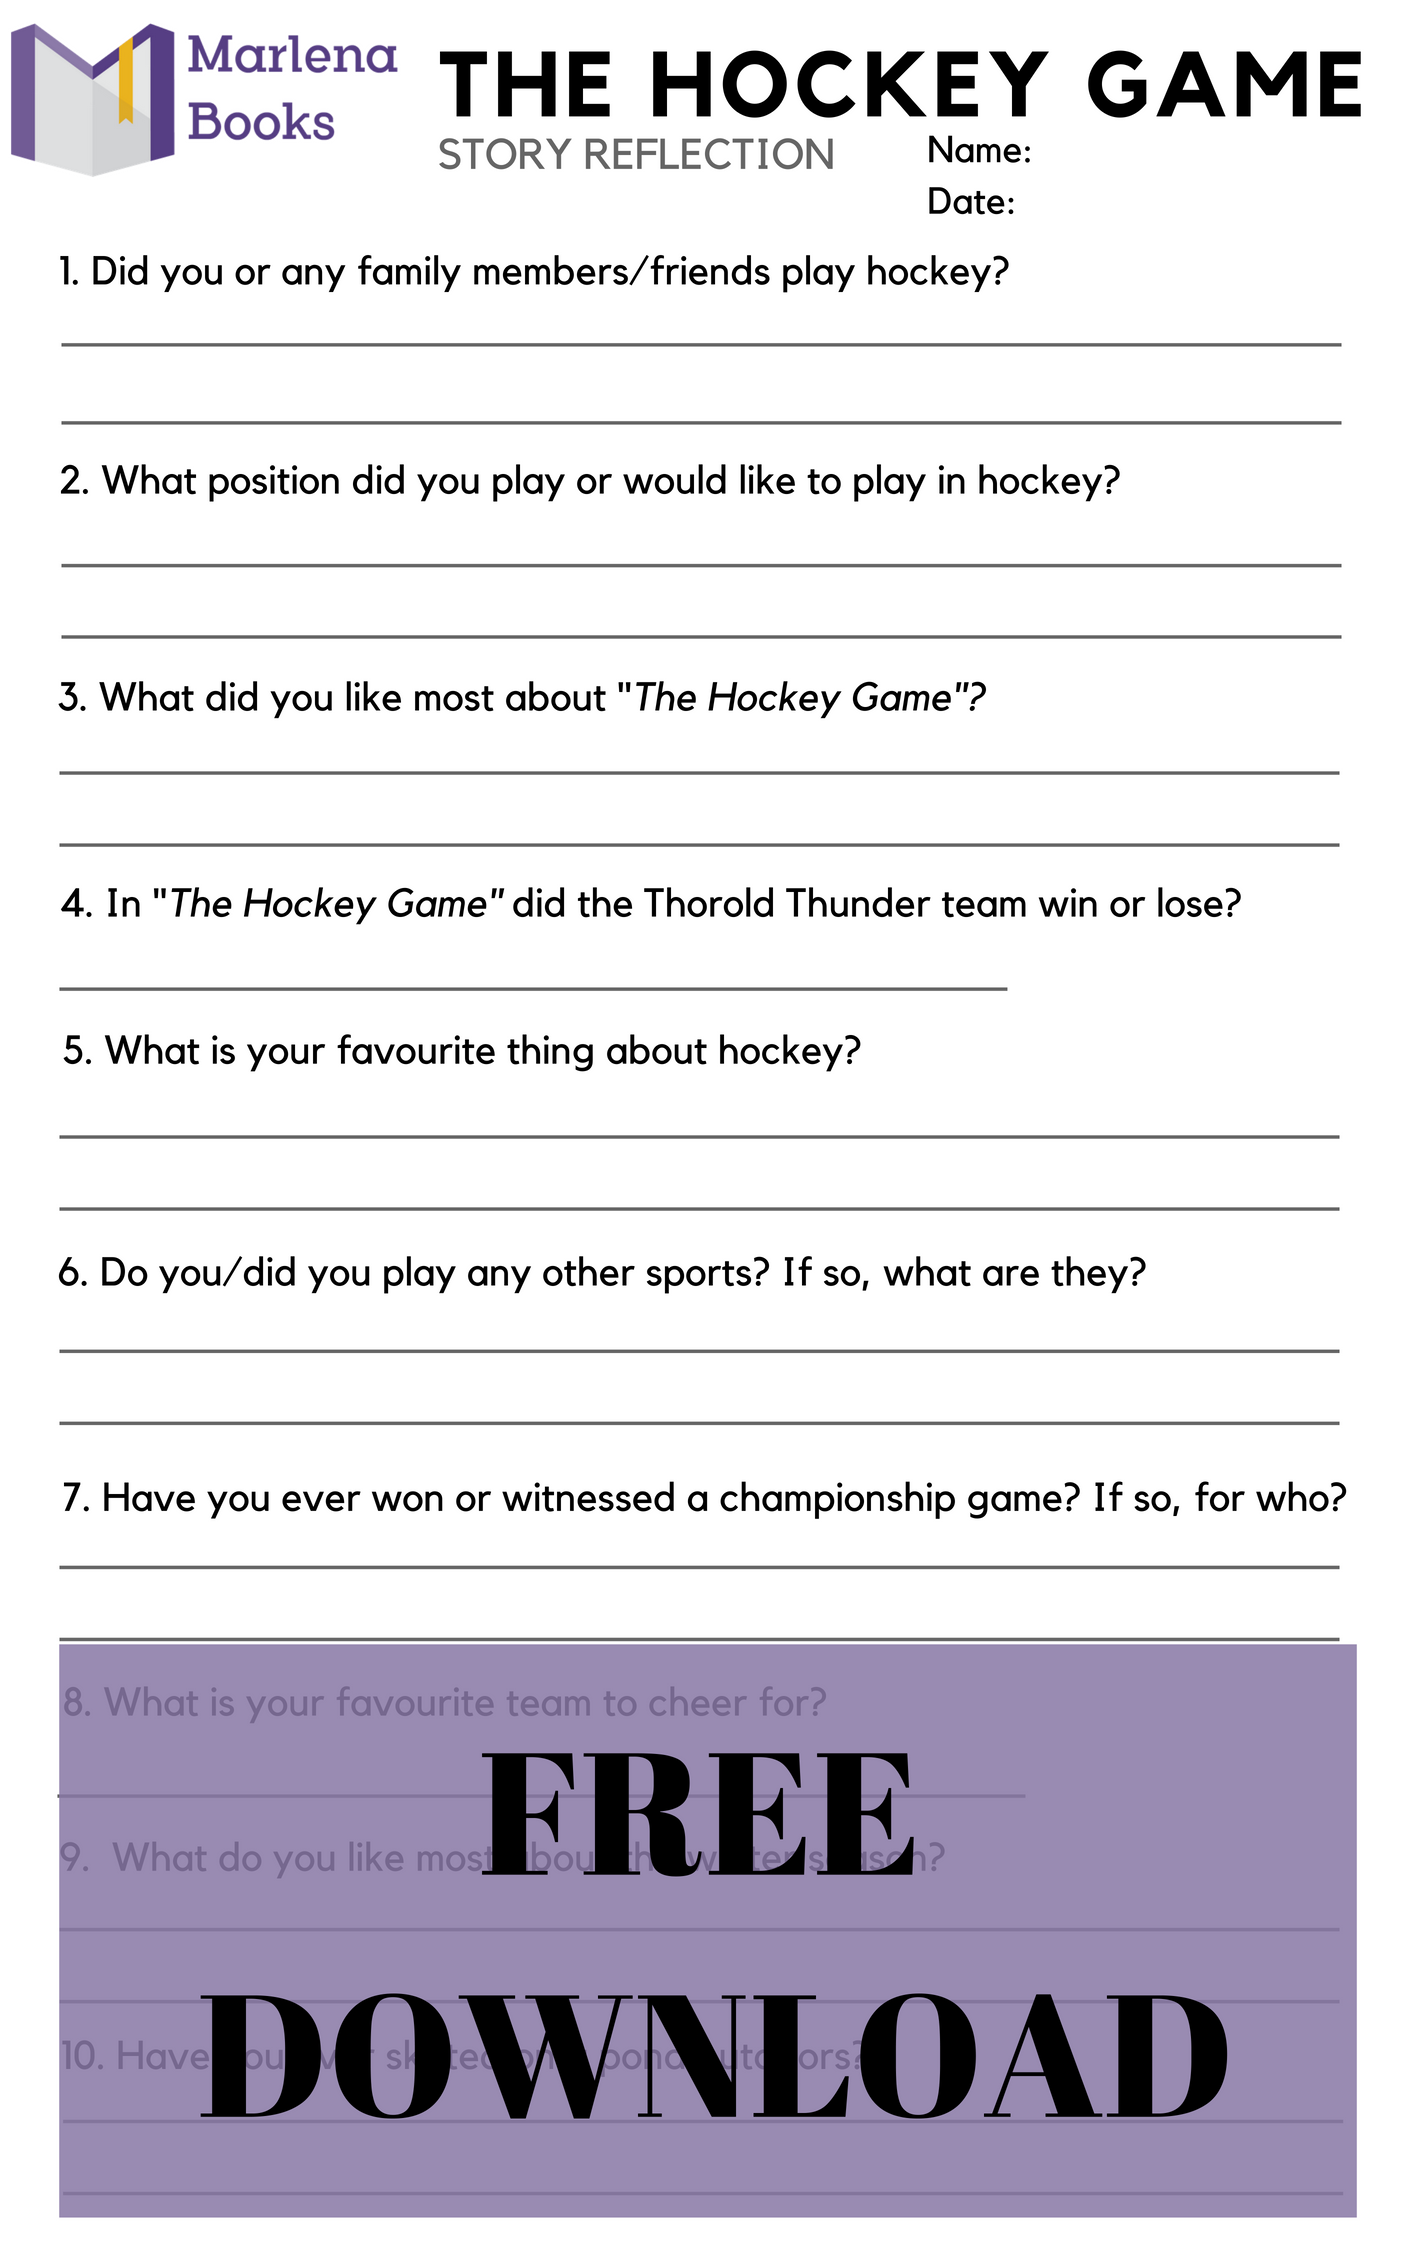 The Hockey Game Story Reflection free download!